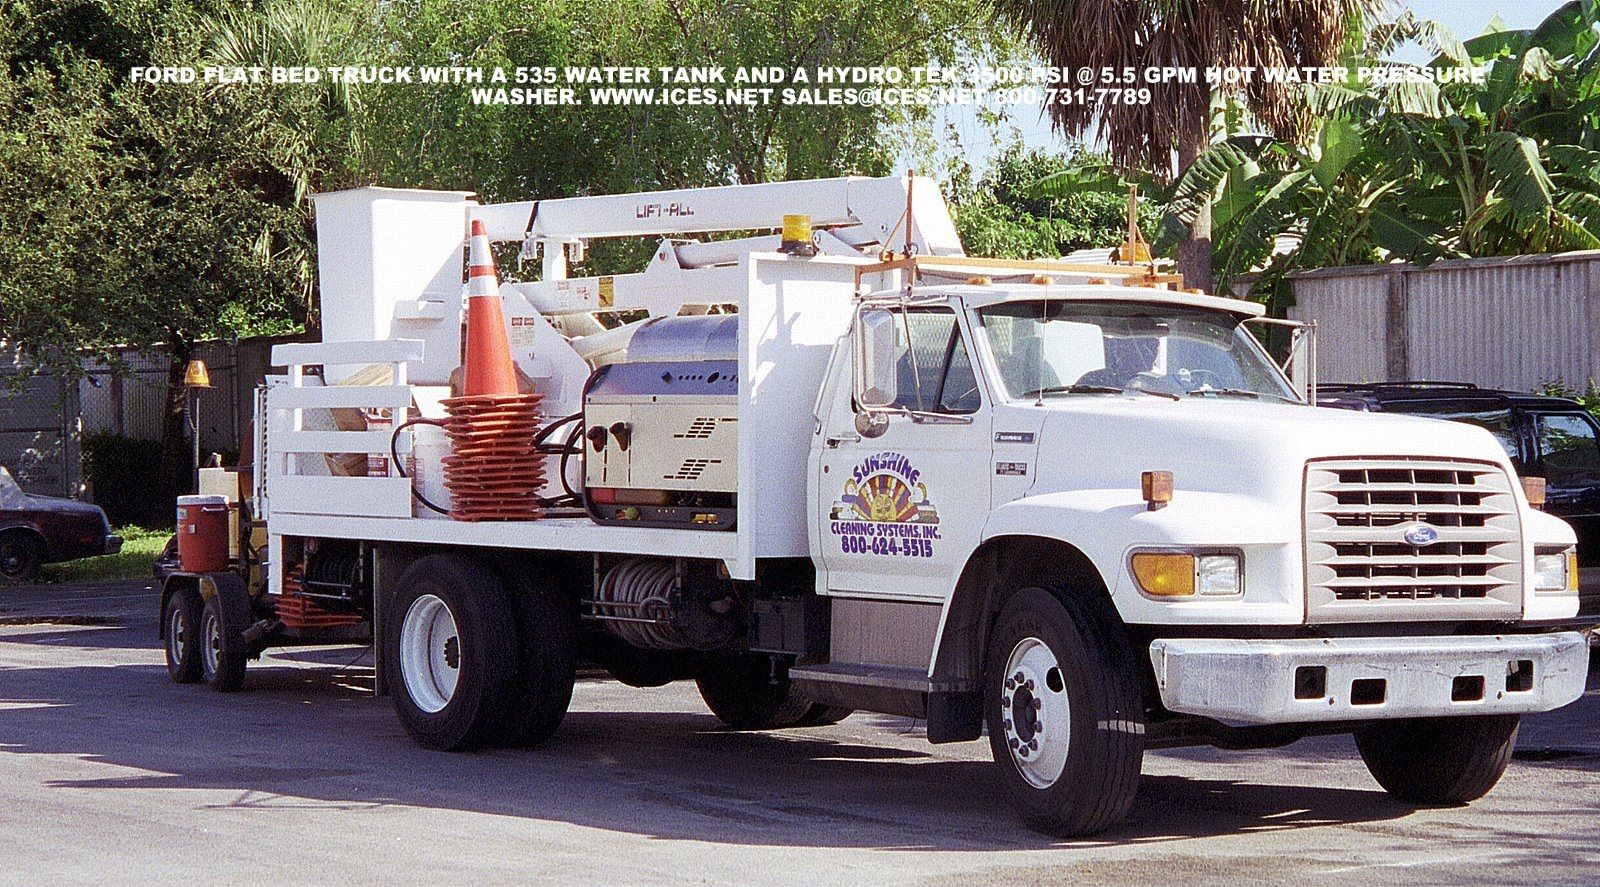 Truck mounted pressure washer. Dan Swede Sales, marketing